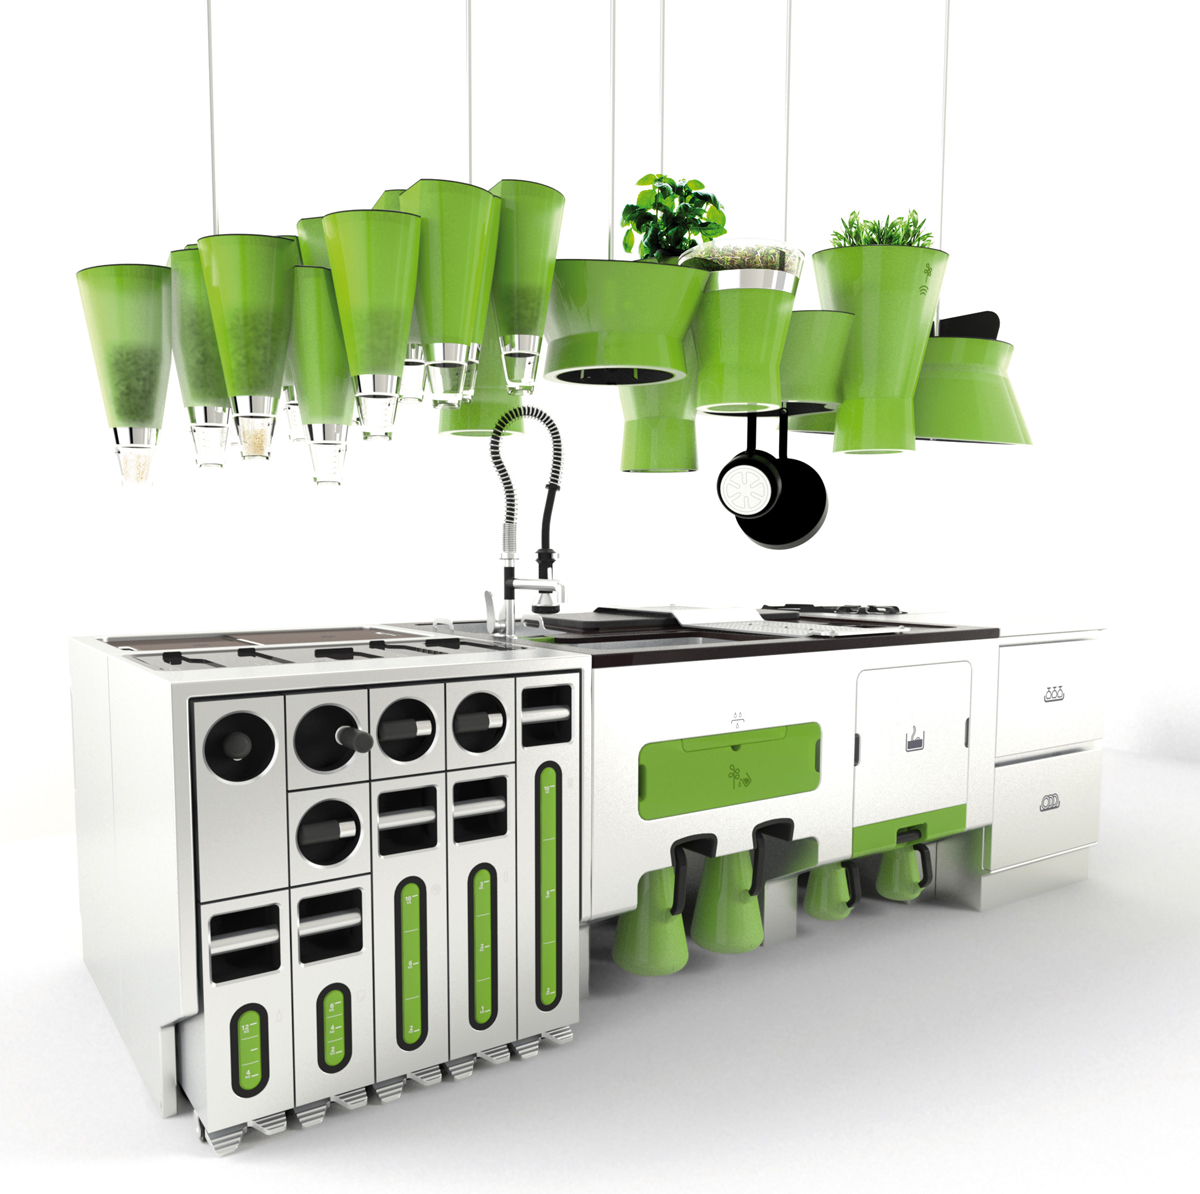 Eco friendly futuristic kitchen for Eco friendly kitchen products